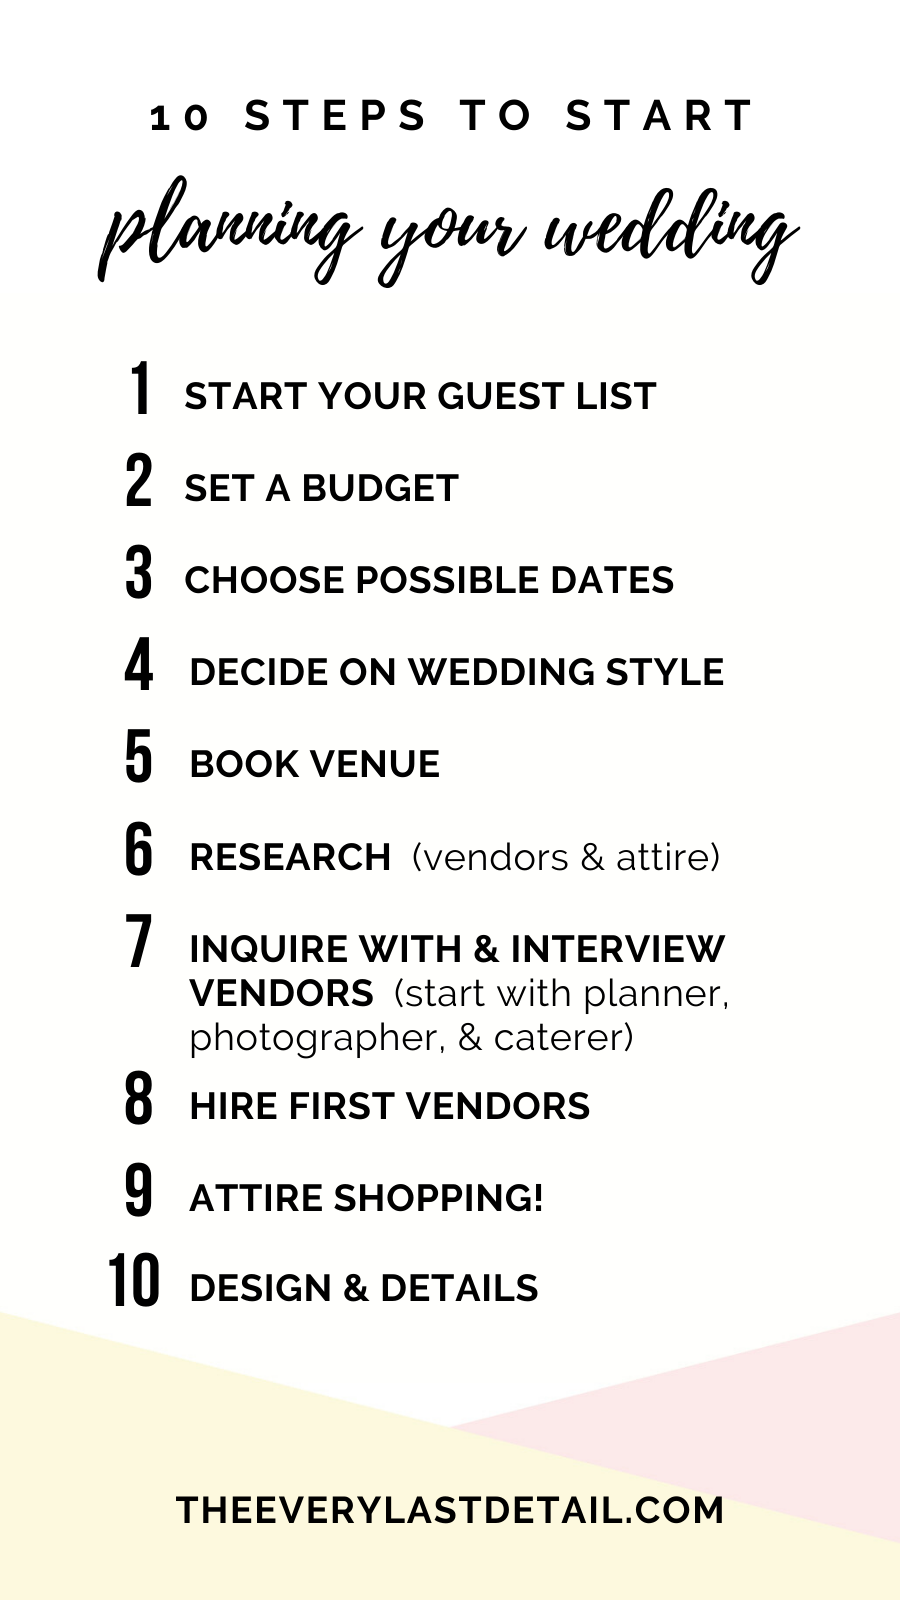 Newly Engaged? 10 Steps To Start Planning Your Wedding! via TheELD.com